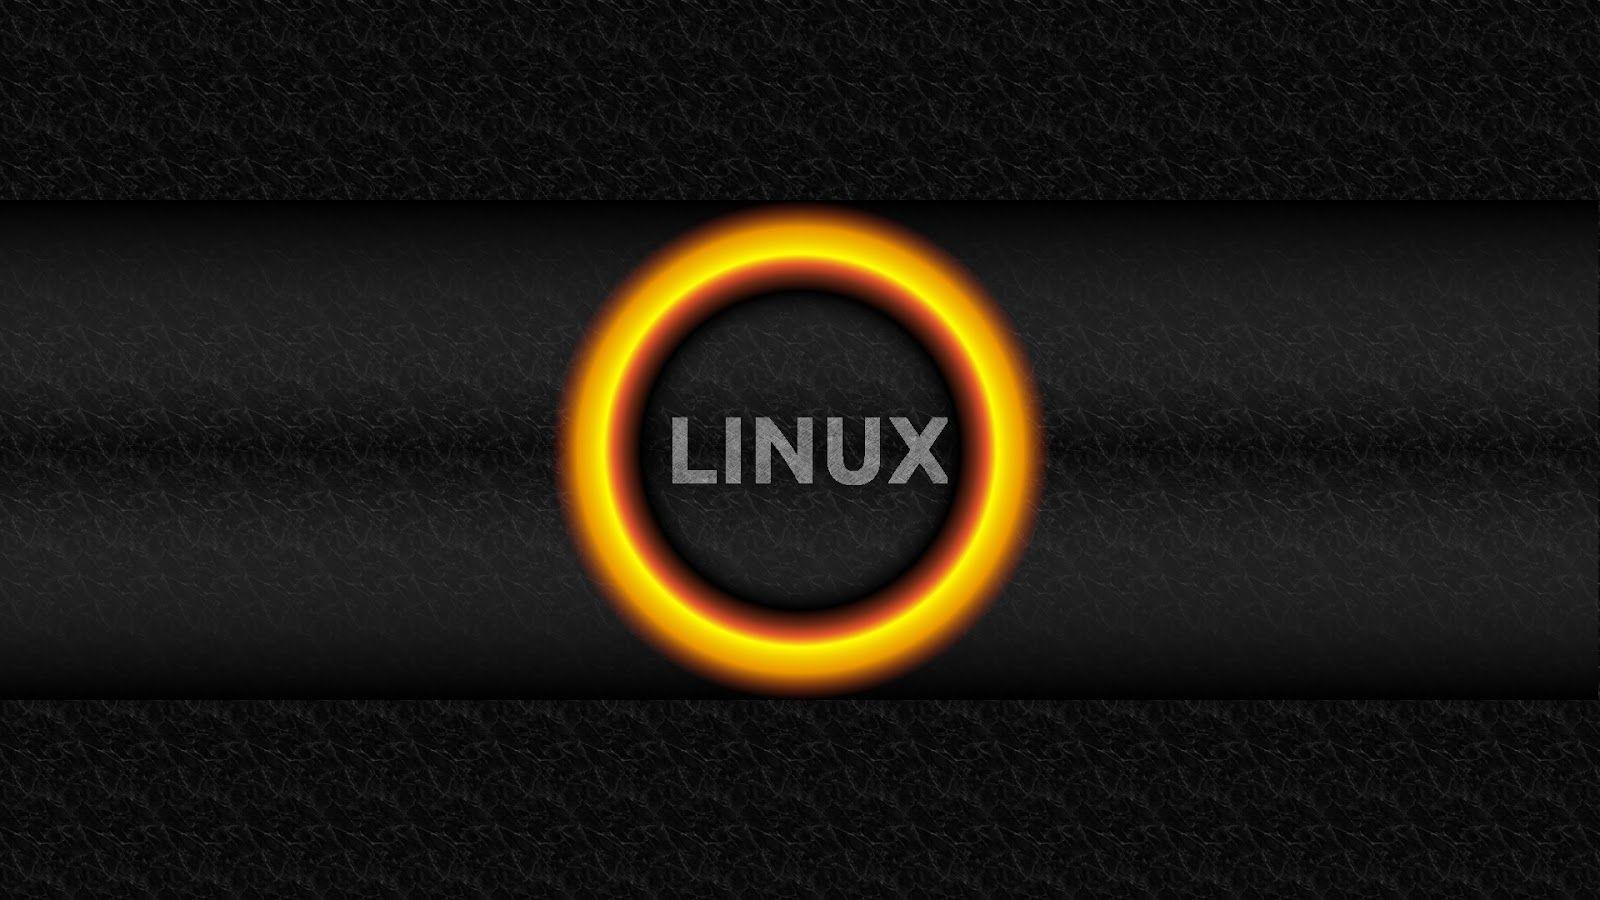 Classic Linux HD Wallpapers - HD Wallpapers Inn